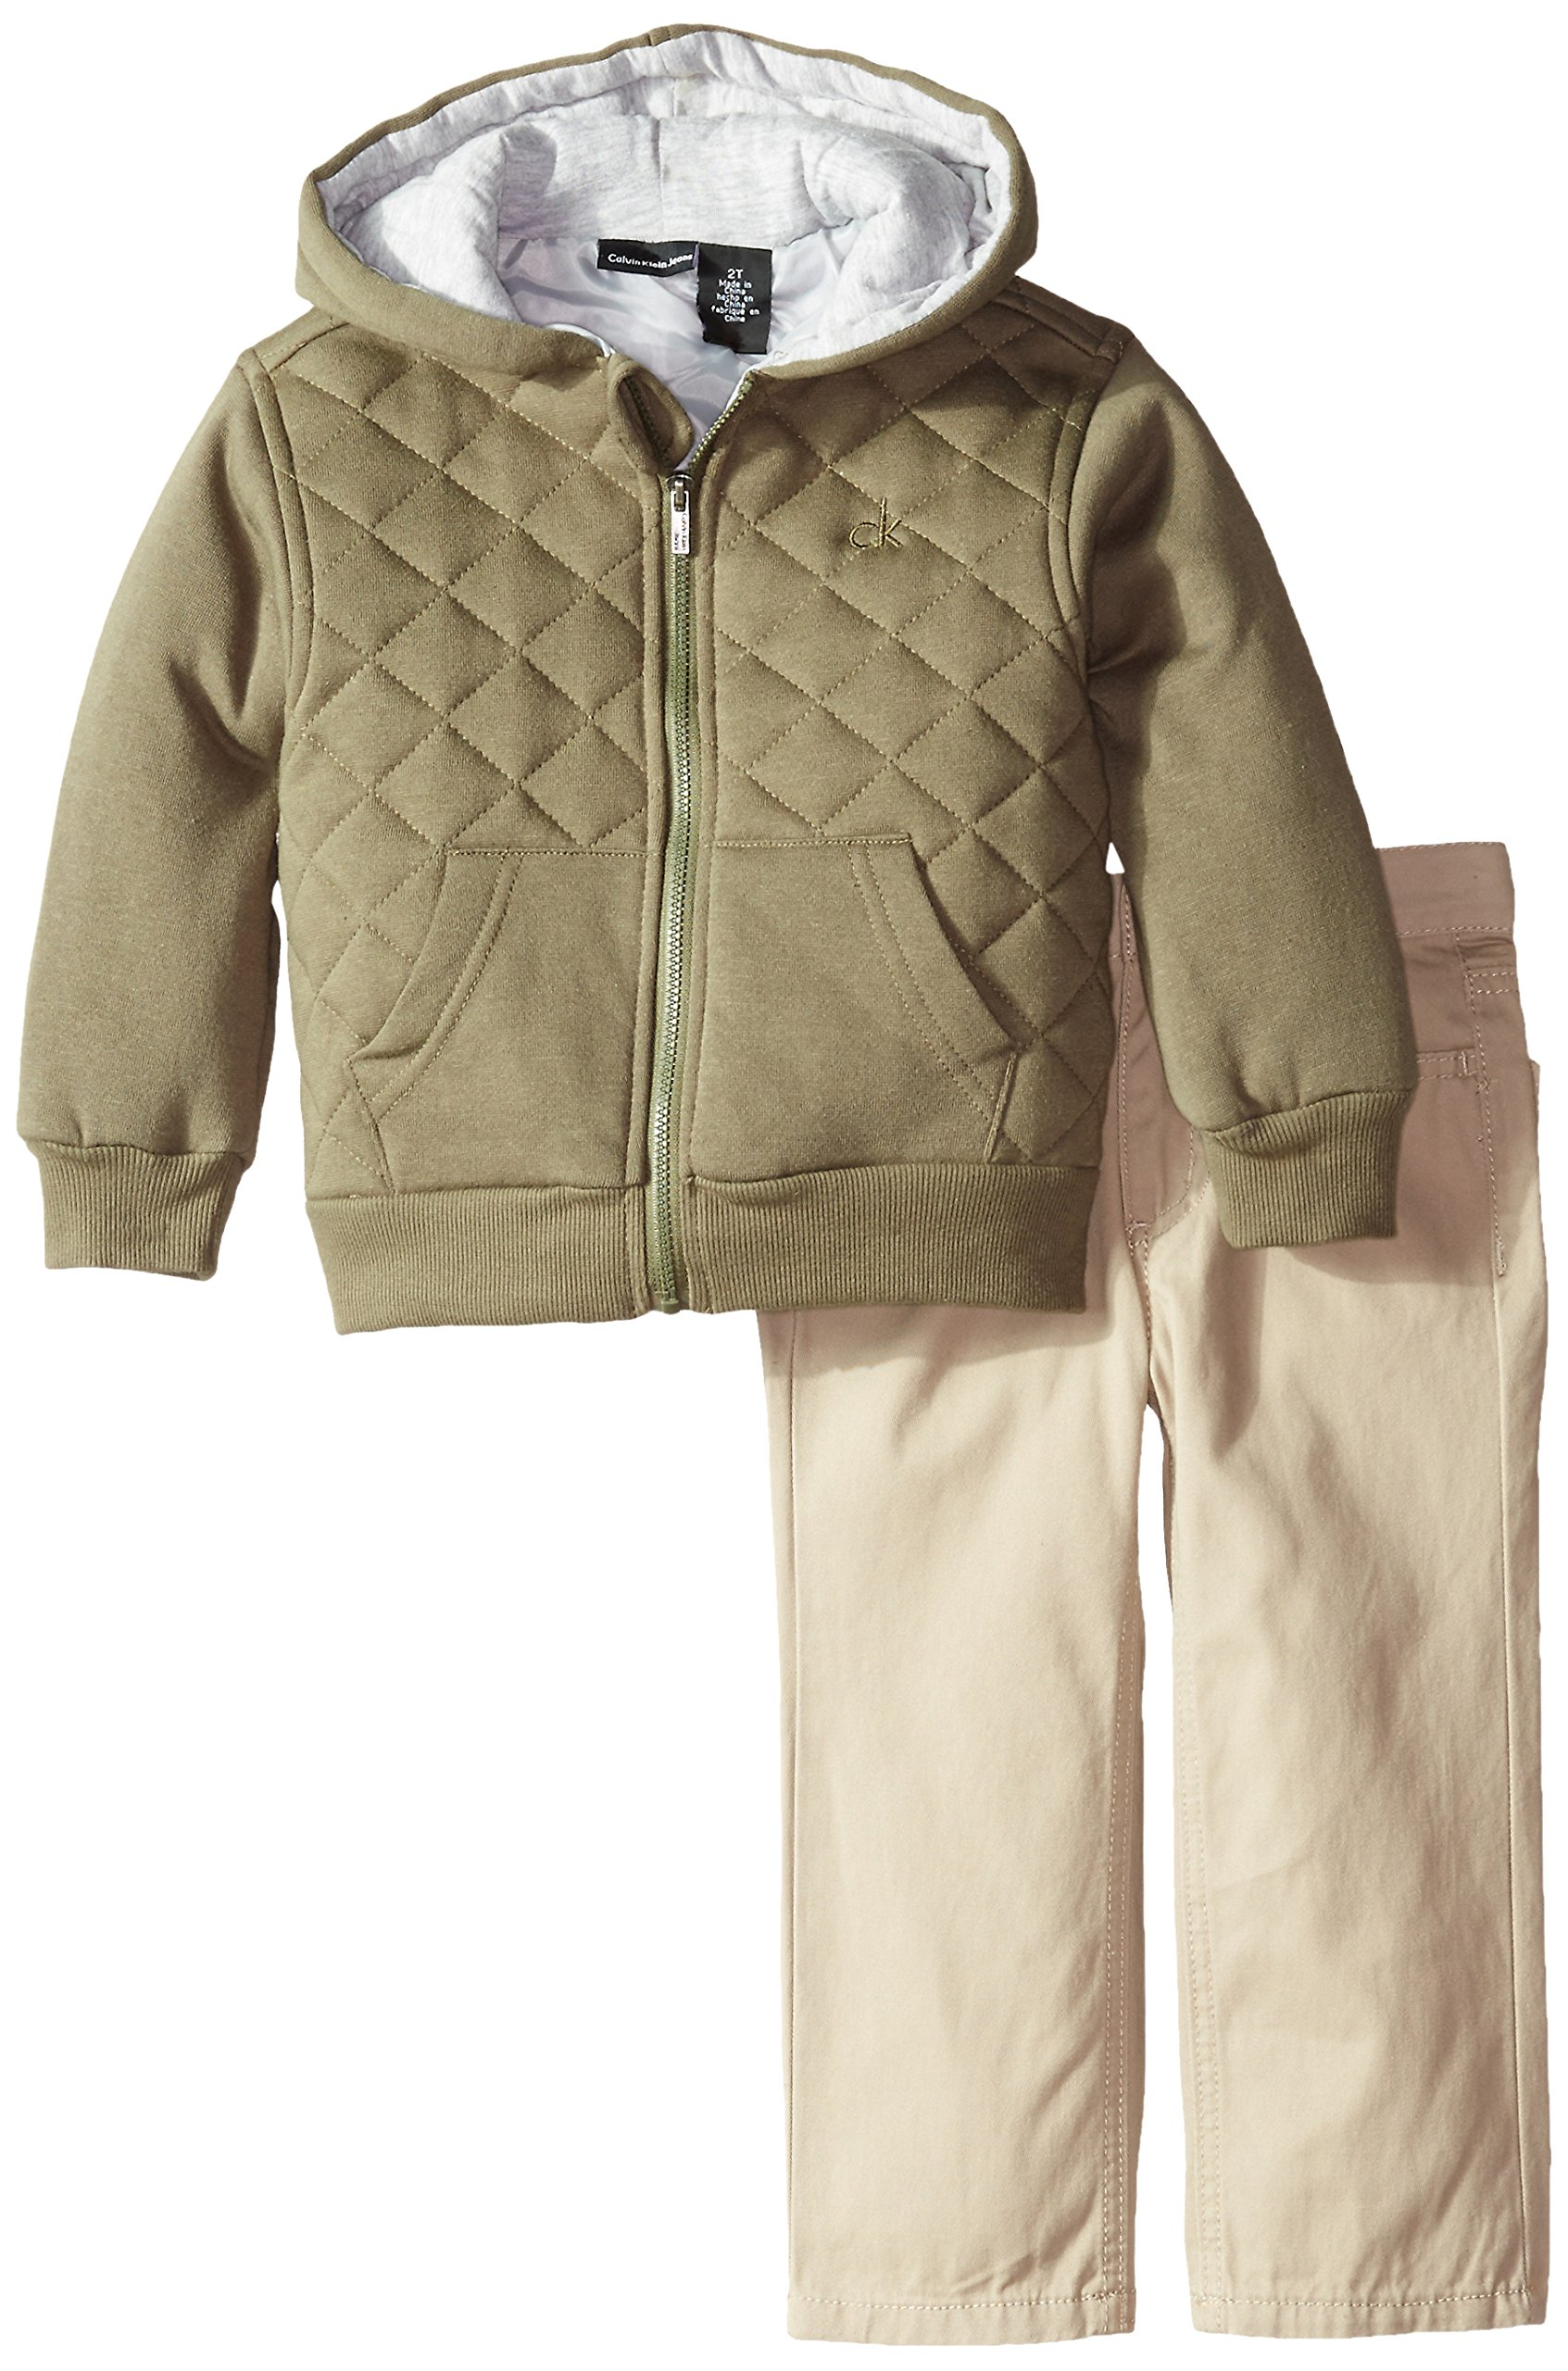 Calvin Klein Little Boys' Toddler Fleece Jacket with Short Sleeve Tee and Pants Toddler, Green, 3T